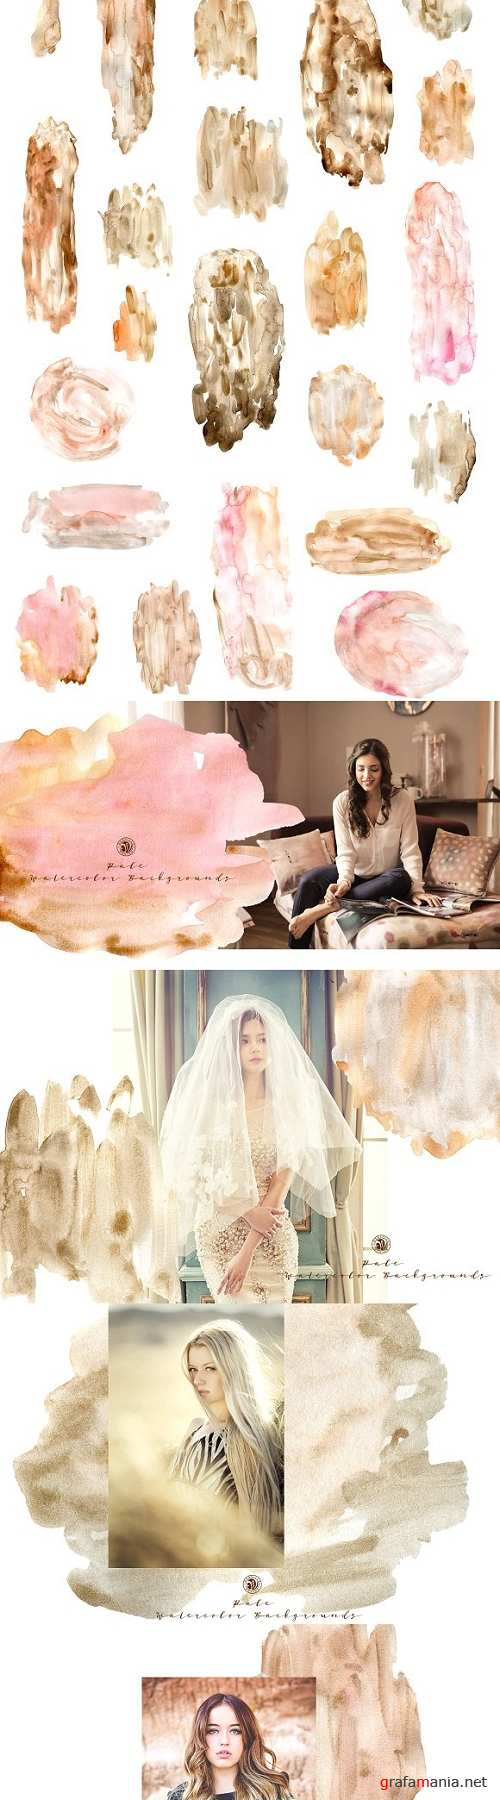 Pale Watercolor Backgrounds 2461042